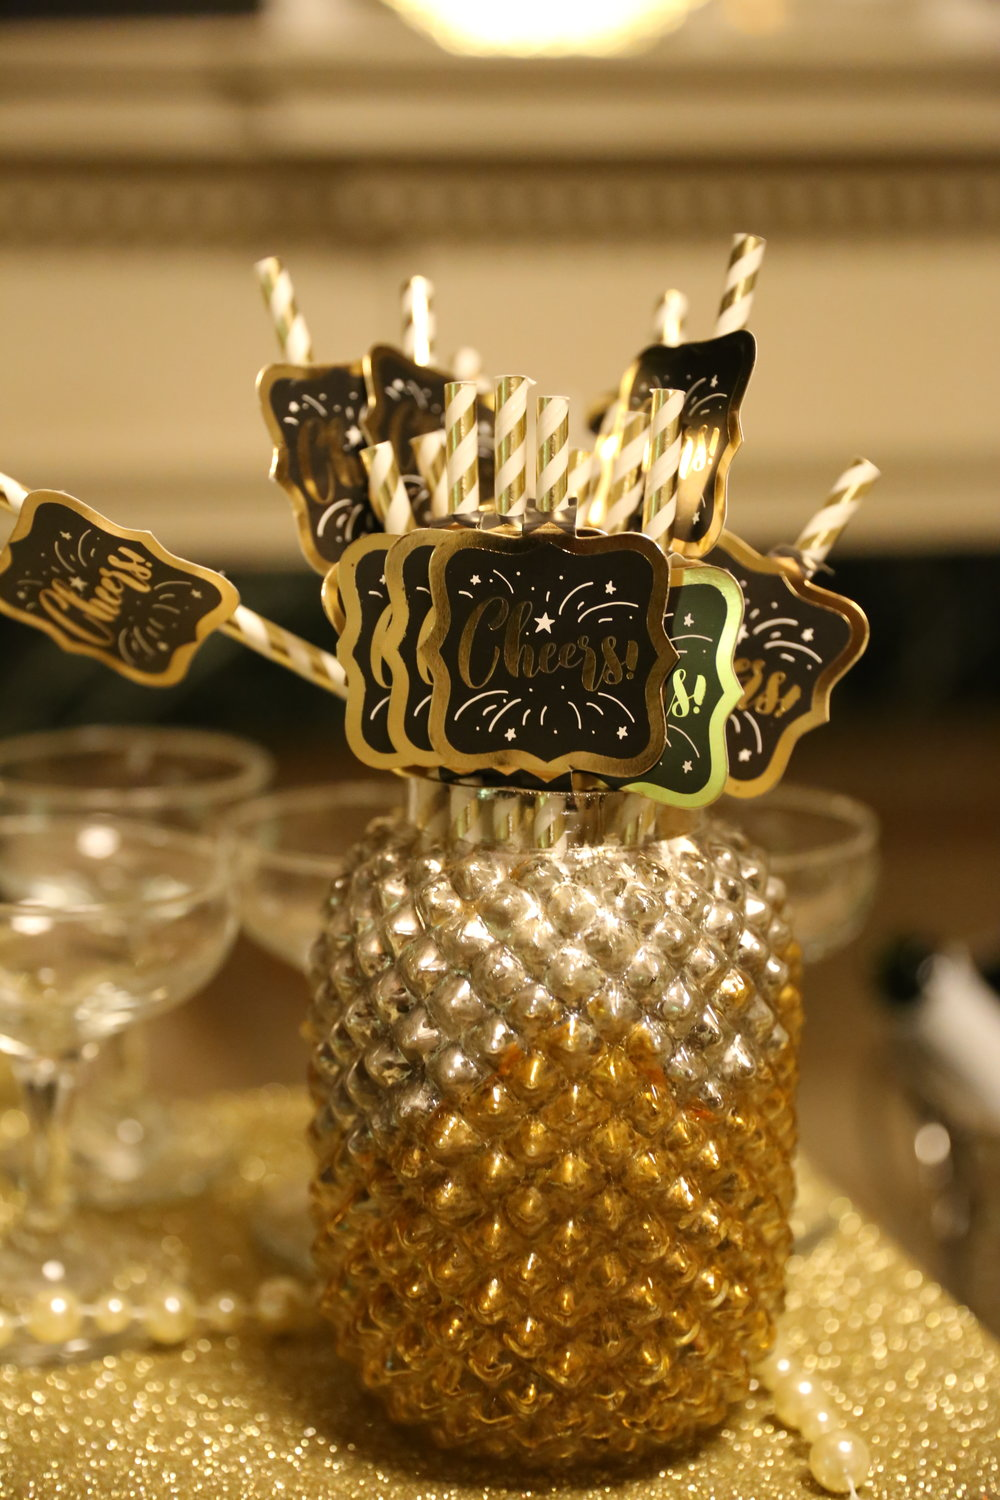 Adorable decor pieces like gold paper straws and strings of pearls decorated the 'Bubbly Bar'.